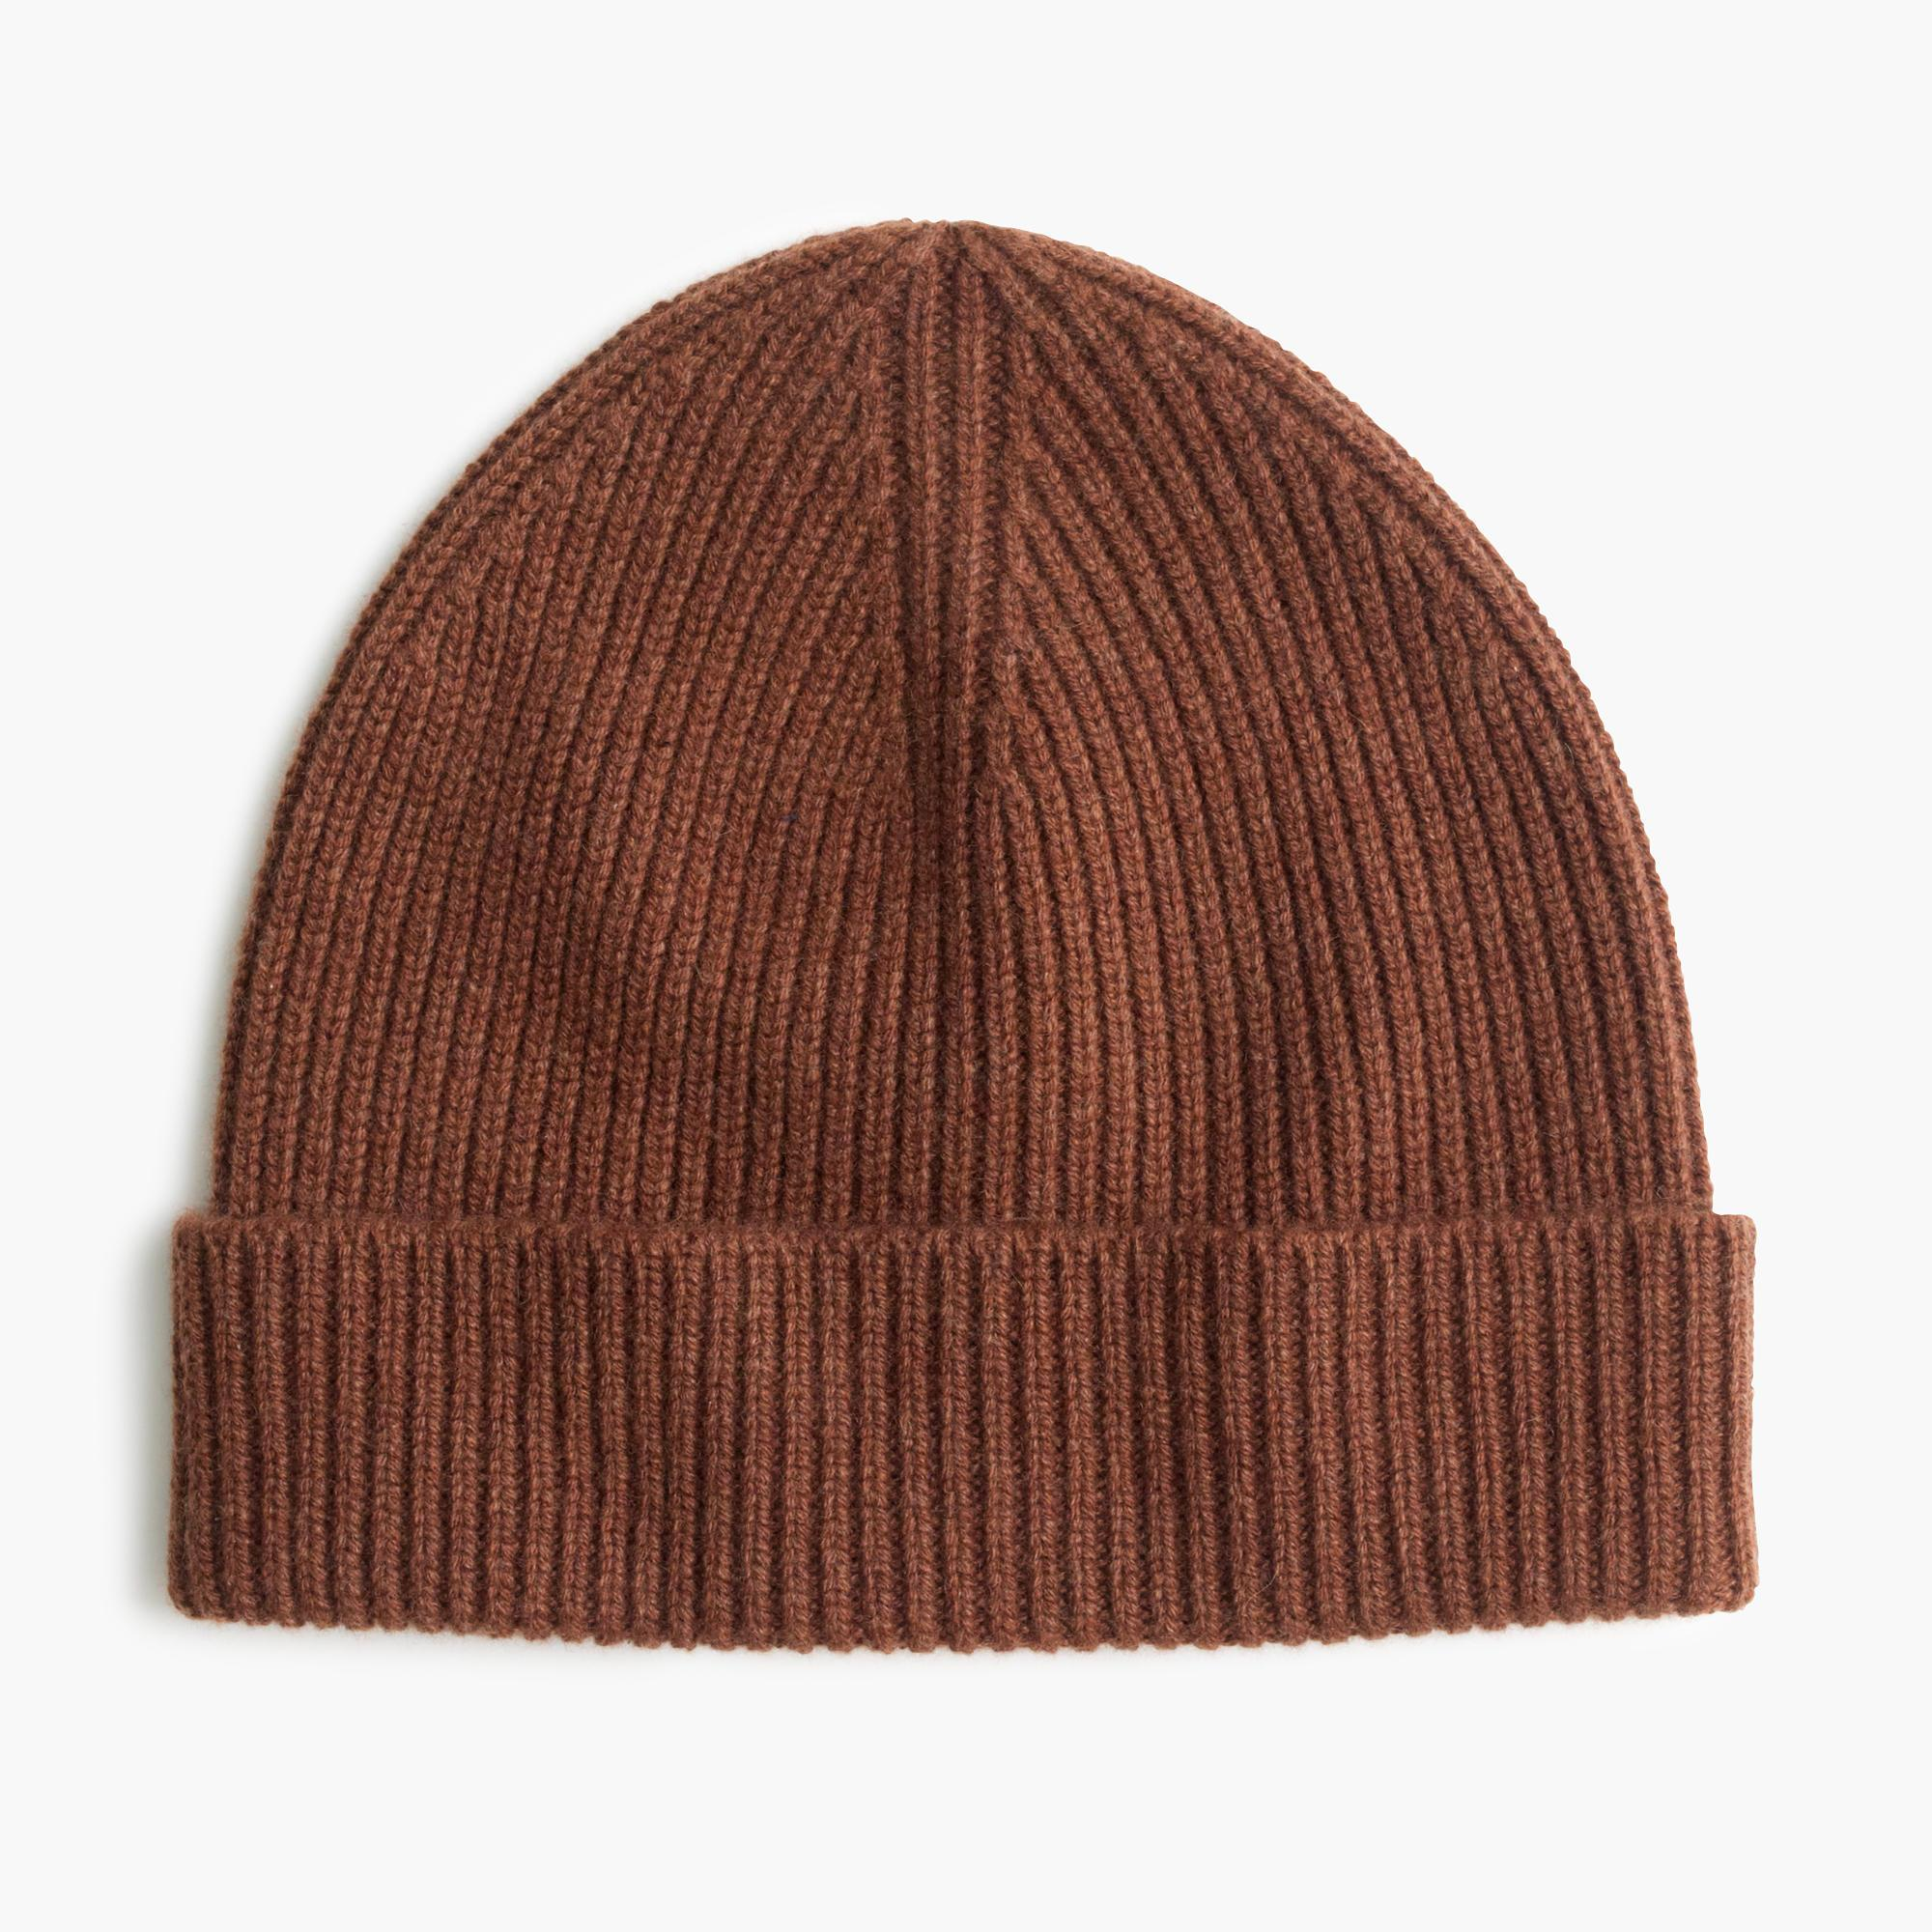 Find great deals on eBay for cashmere hat. Shop with confidence.